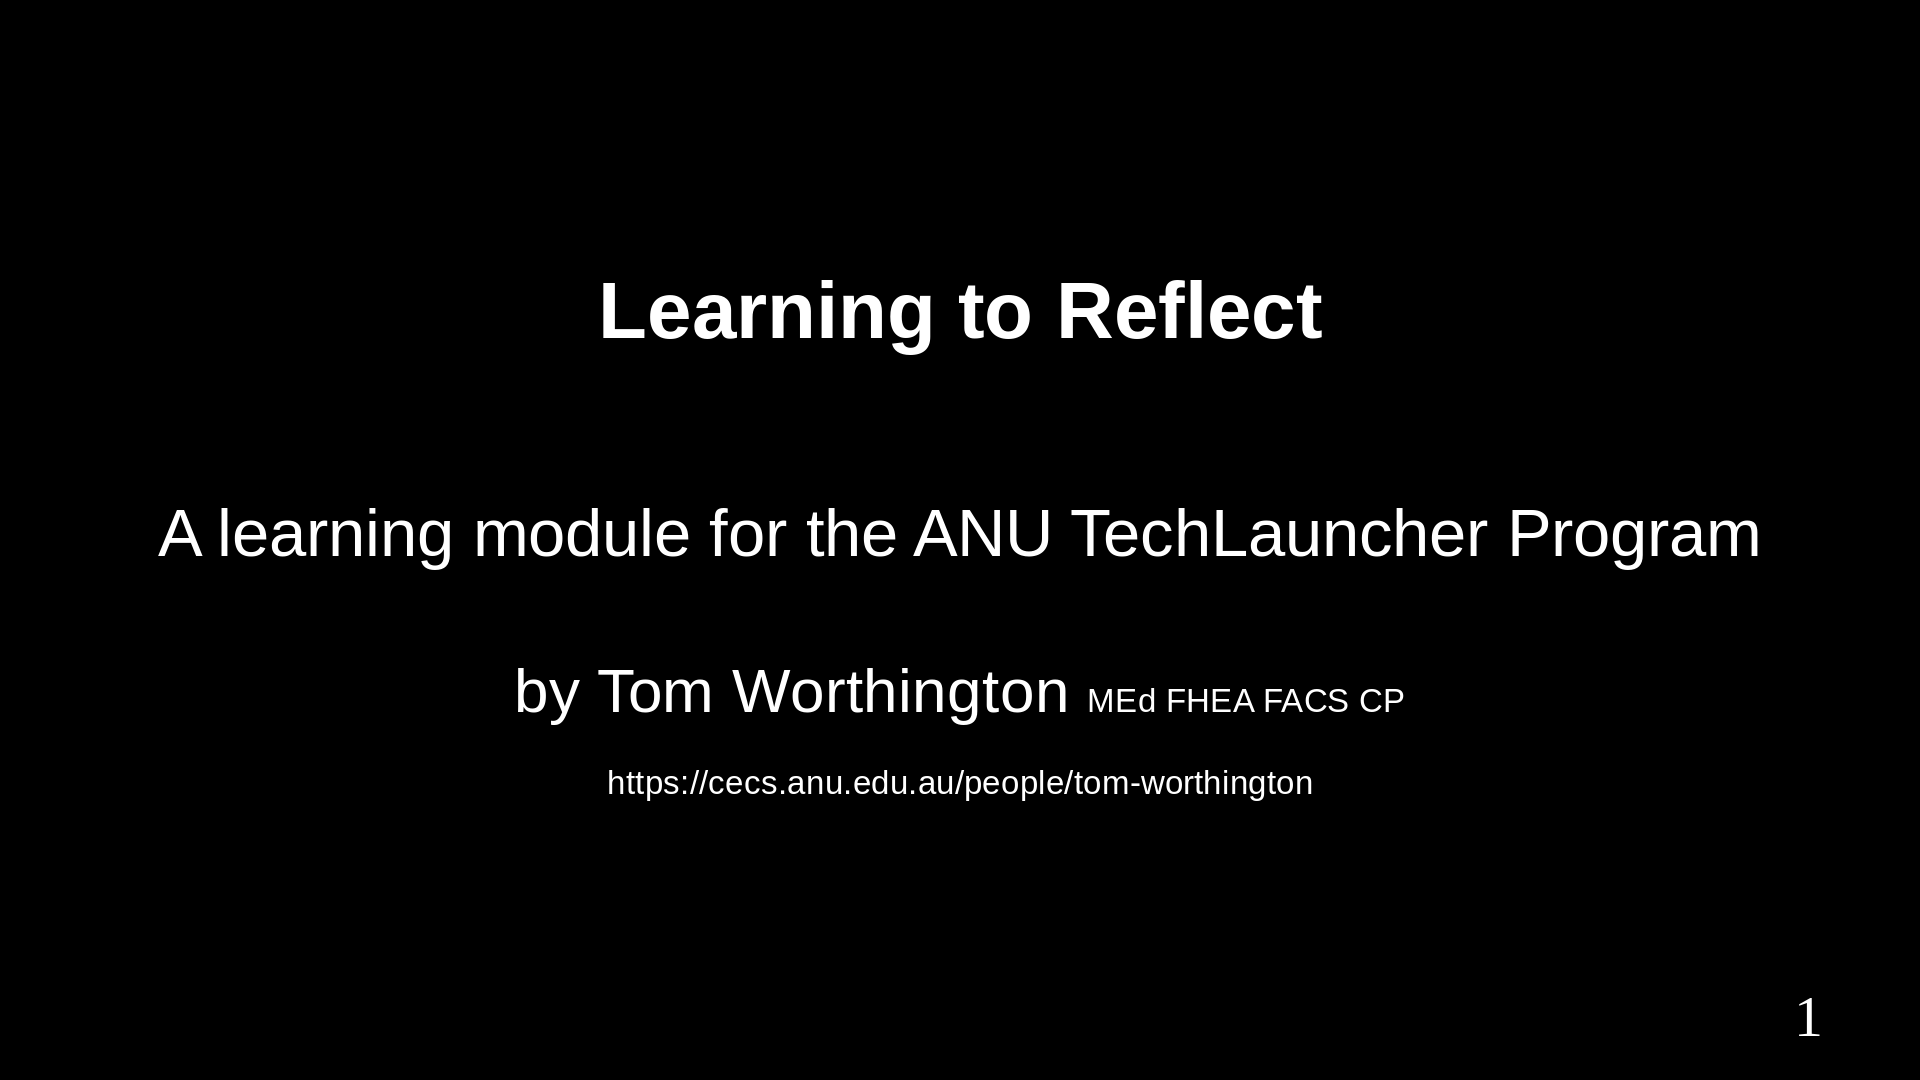 Learning To Reflect Video